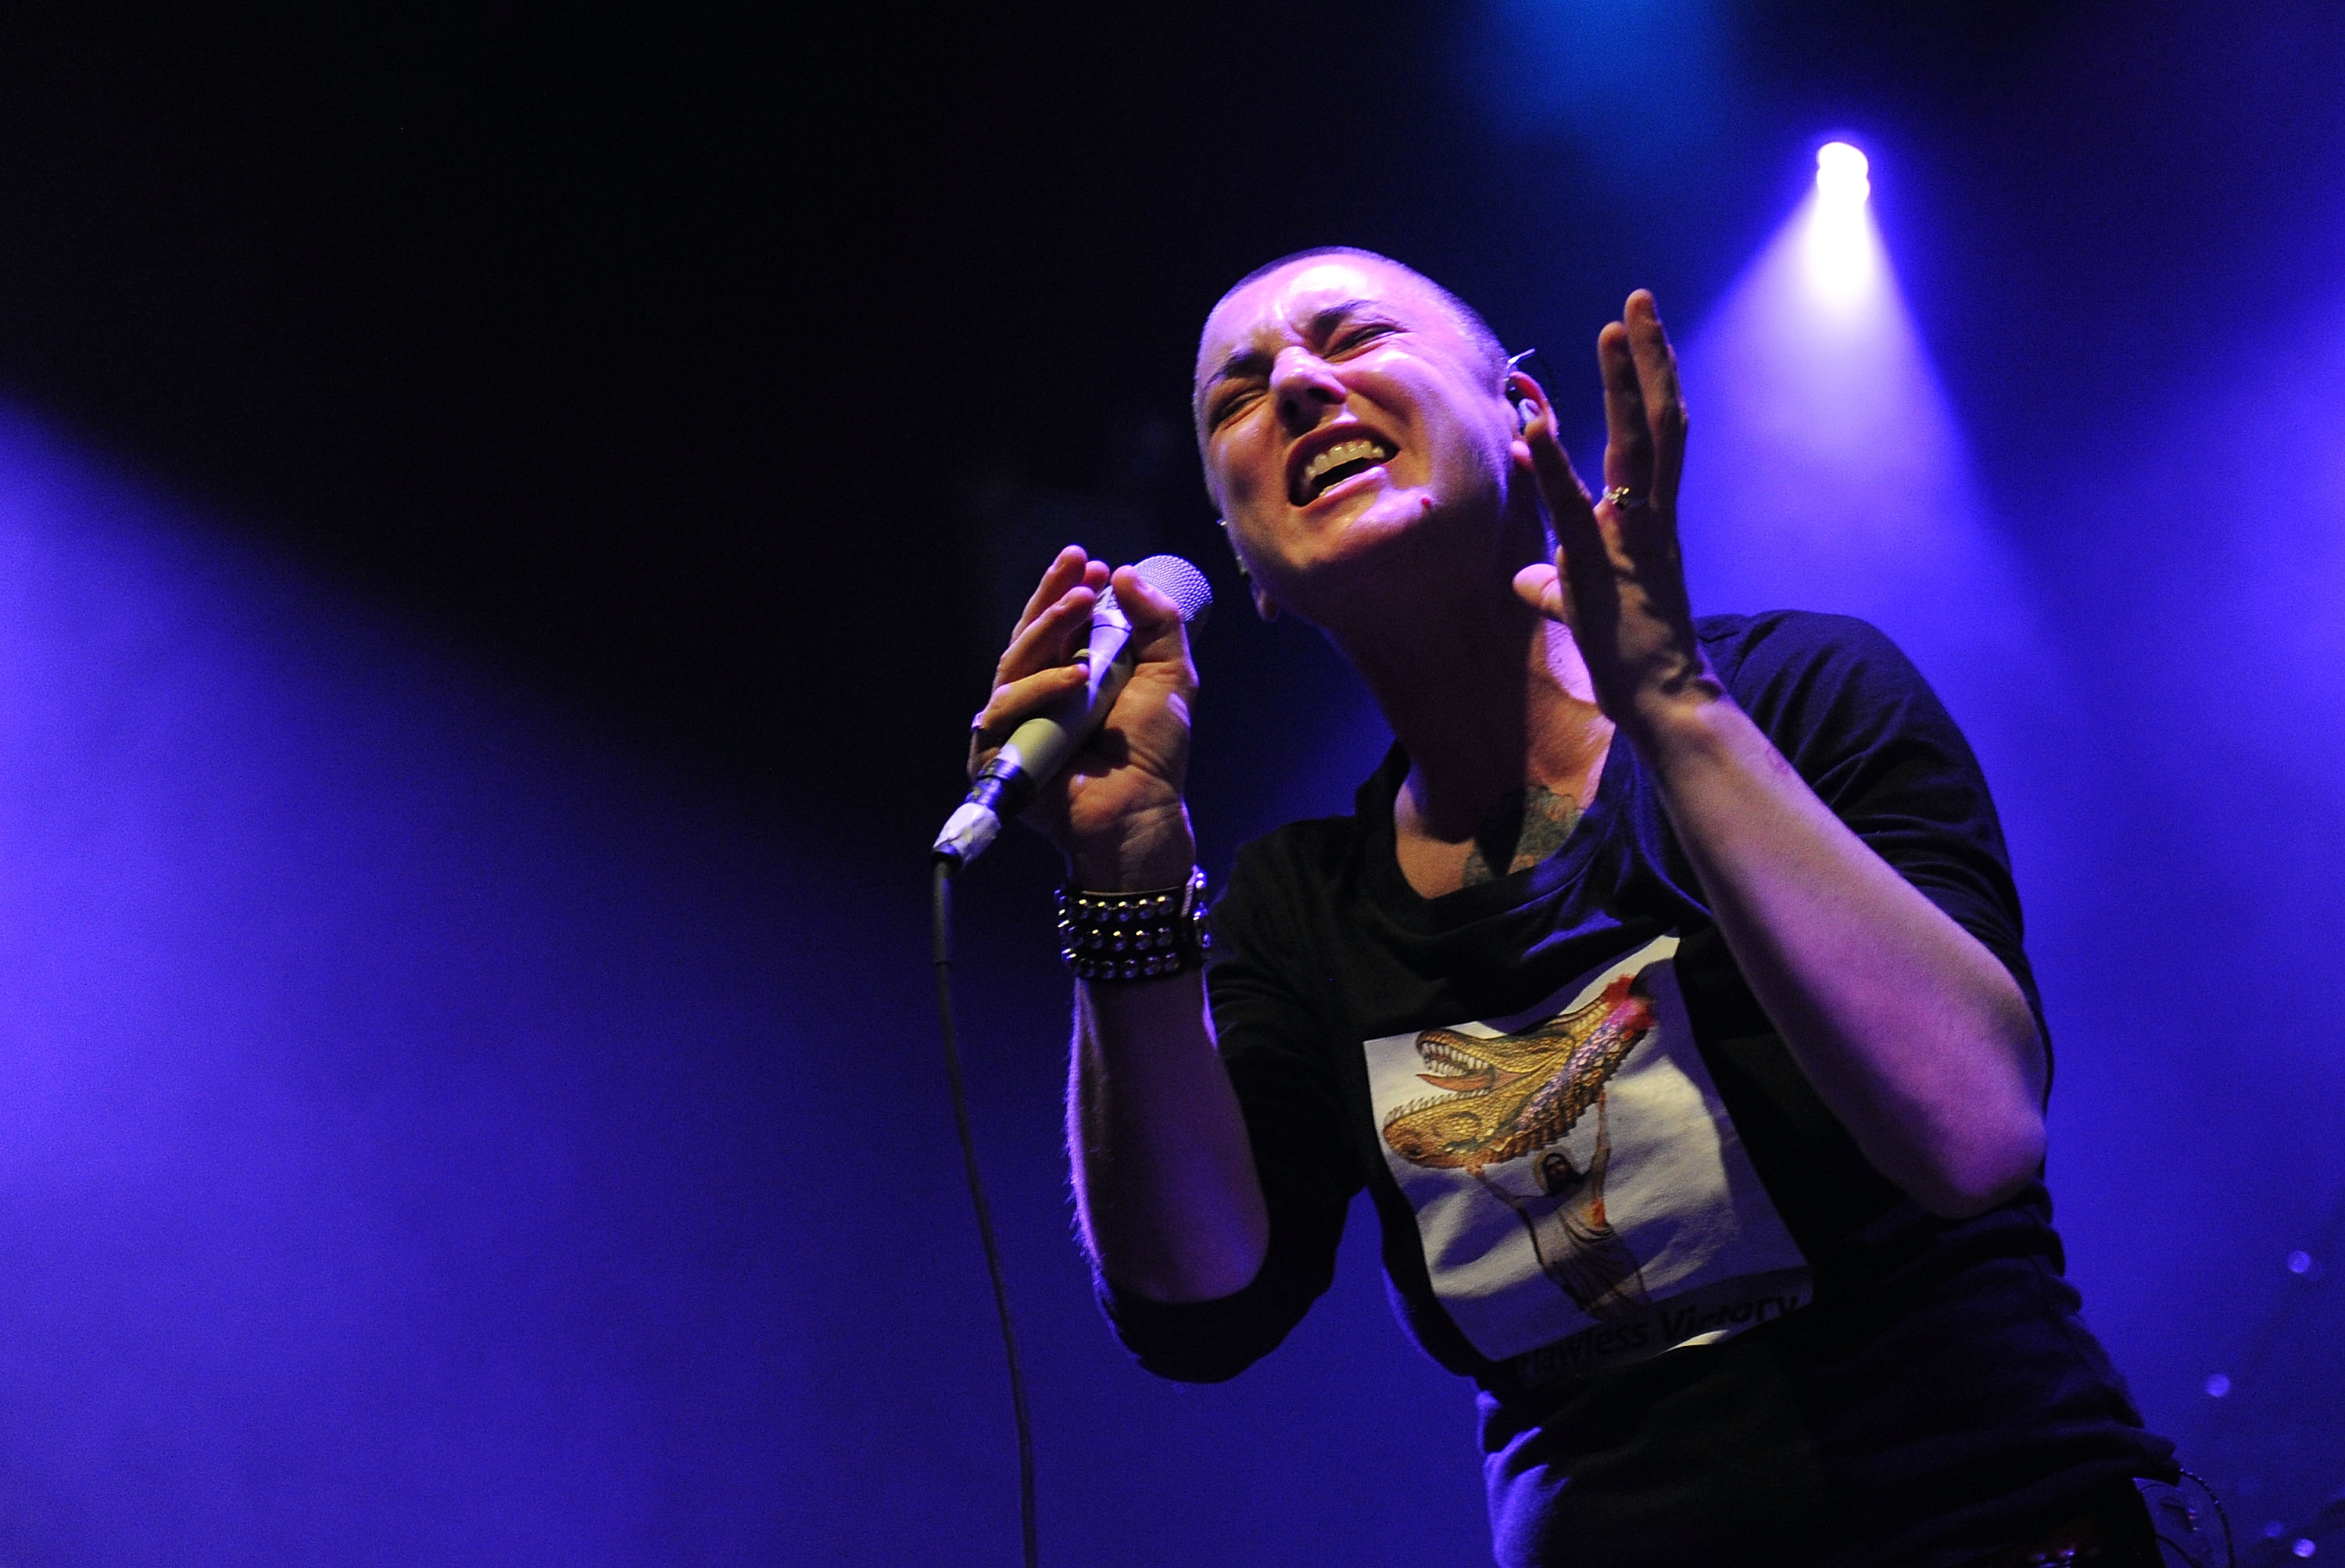 Musician Sinead O'Connor performs at the Highline Ballroom on February 23, 2012 in New York City.